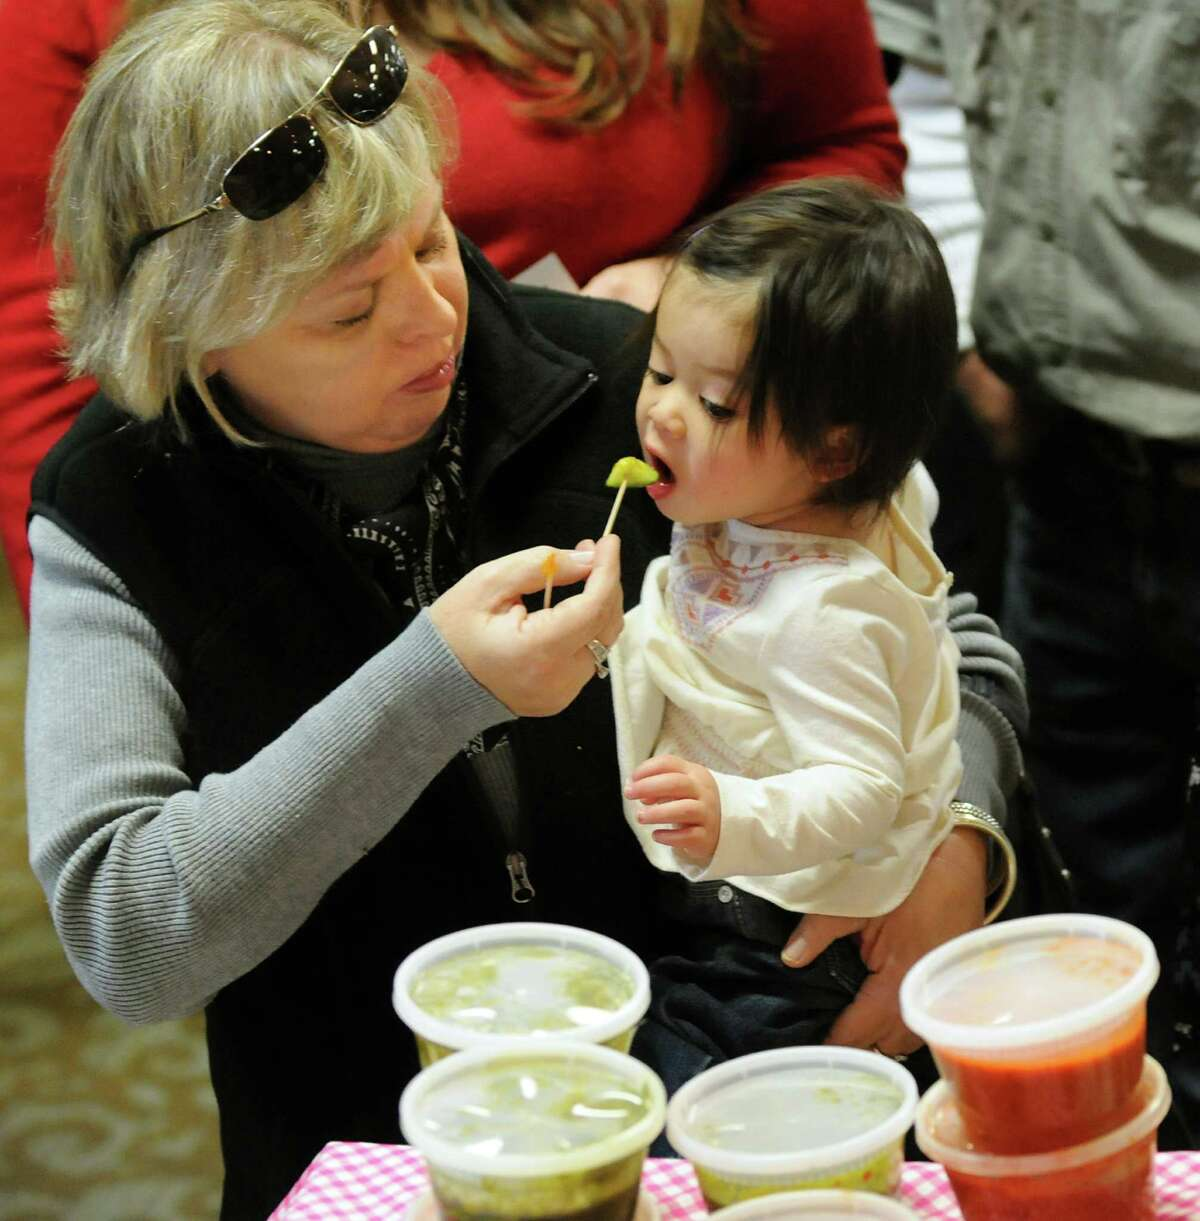 Janet Shaye of Slingerlands, left, gives her granddaughter Enilia Eng, 1, a food sampling during Albany VegFest 2013 on Saturday, Nov. 16, 2013, at the Polish Community Center in Albany, N.Y. The annual event, presented by the Albany Vegan Network, featured vendors, speakers, cooking demonstrations and food samplings. (Cindy Schultz / Times Union)